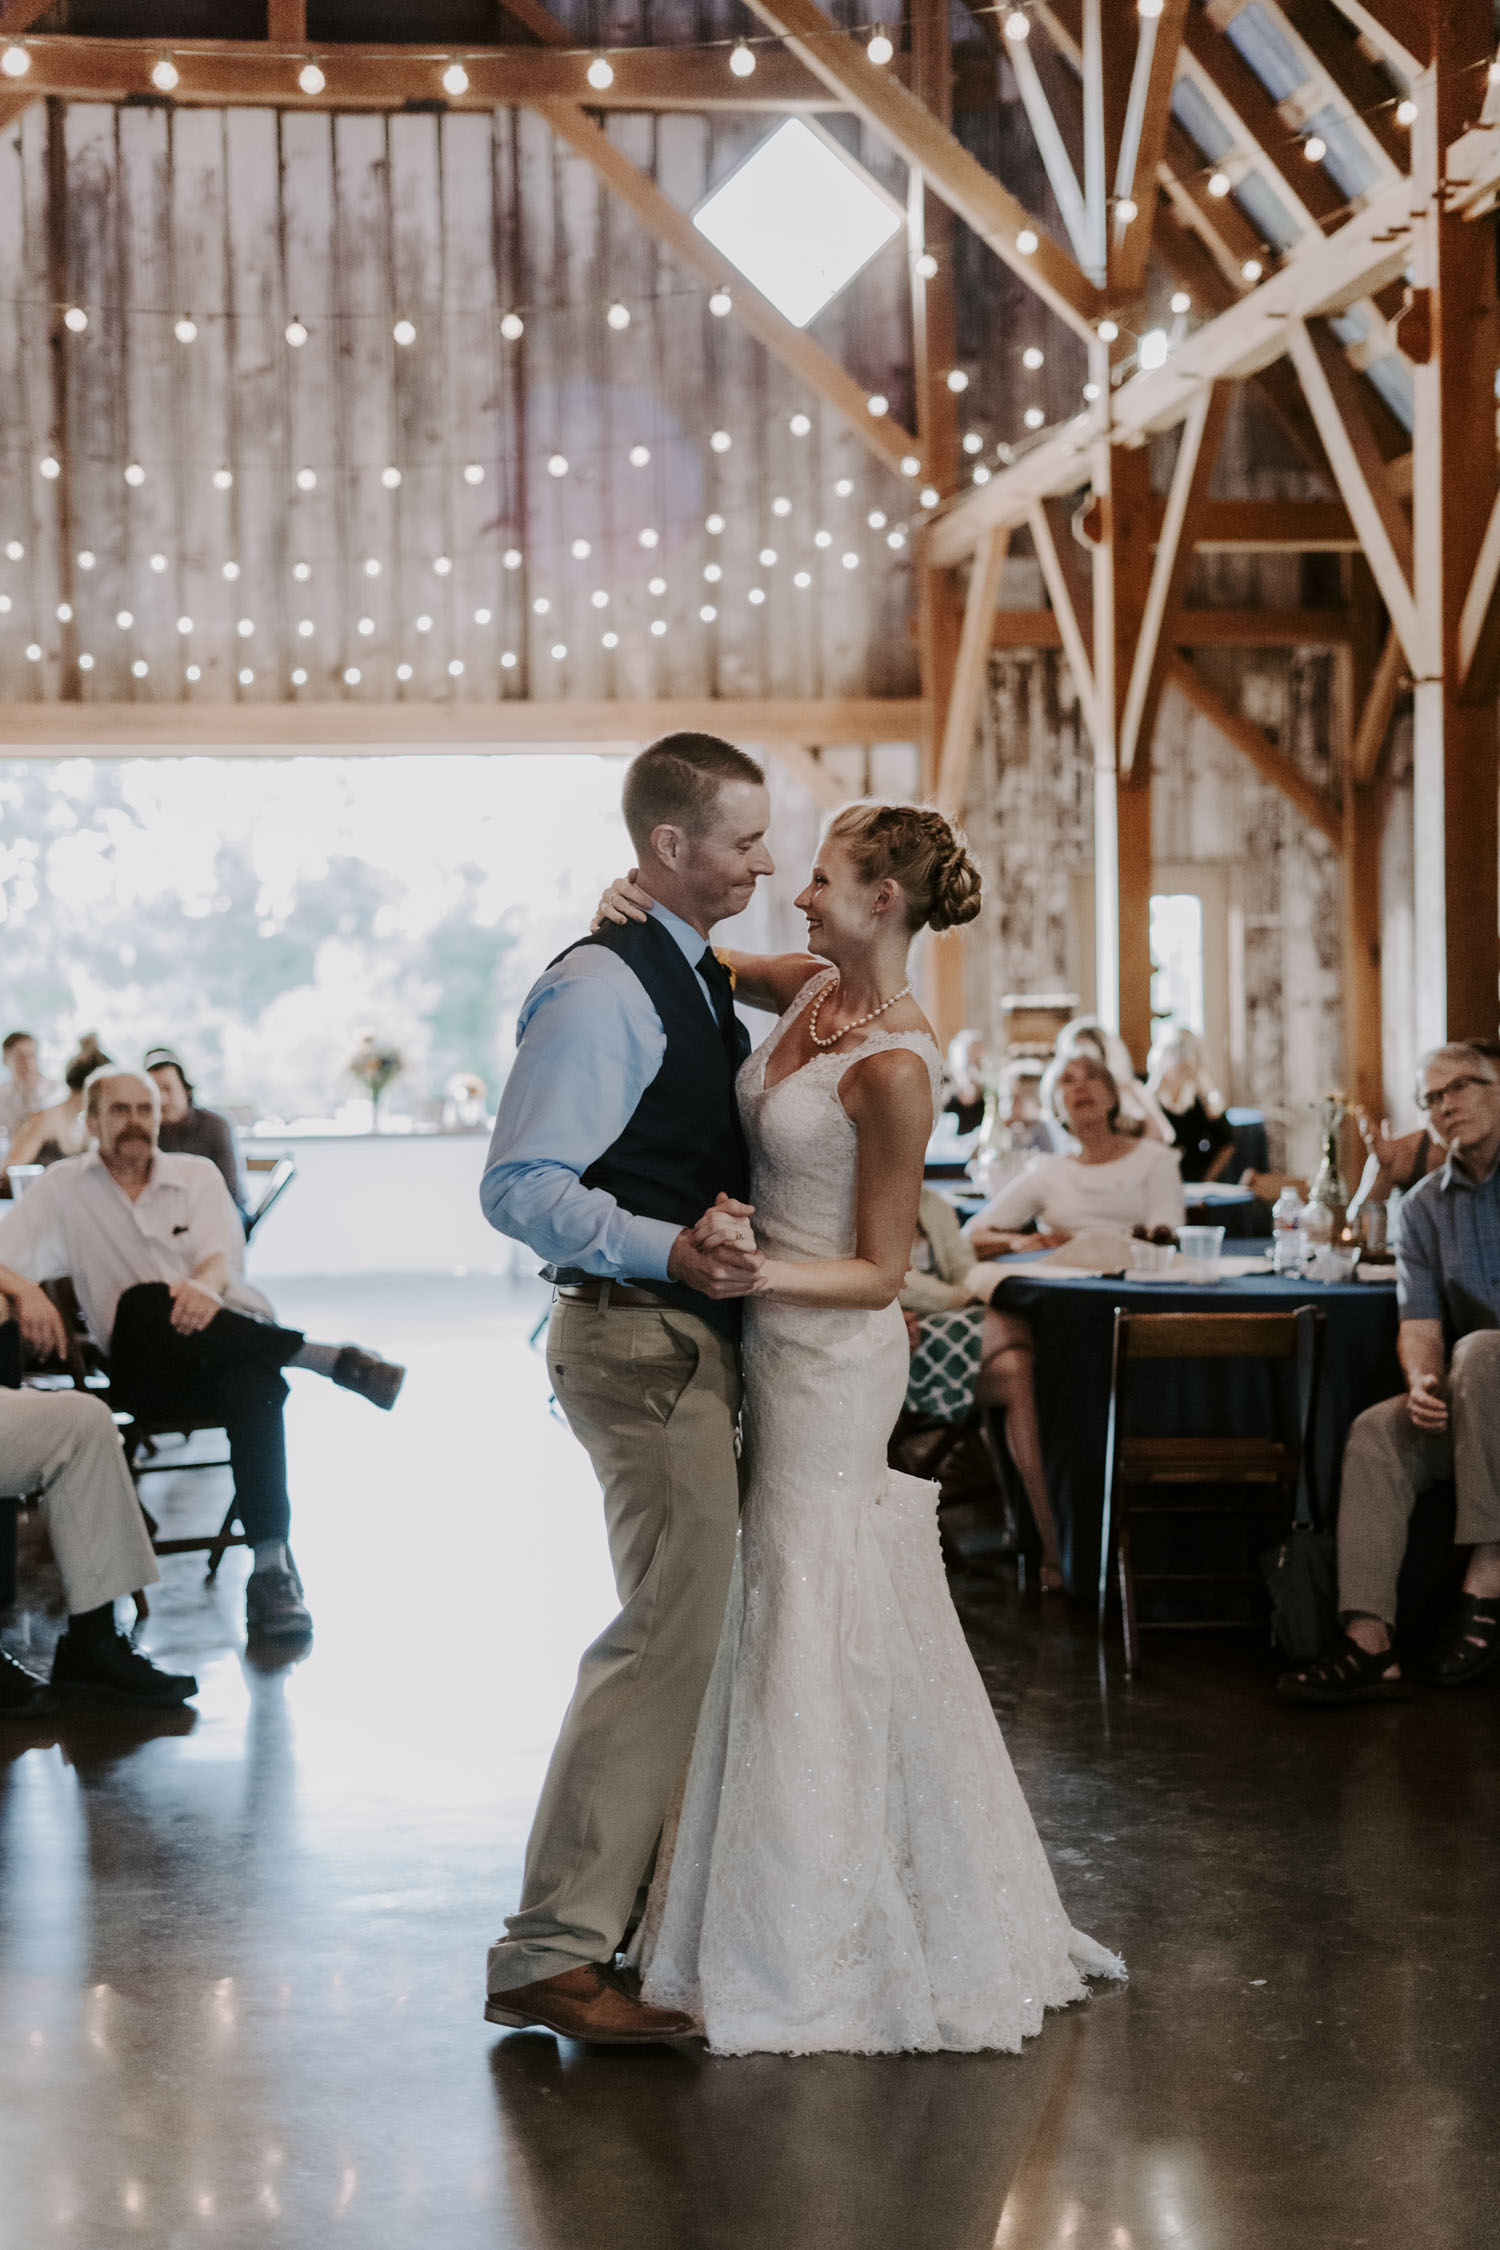 Schwinn Produce Farm Wedding in Leavenworth - Lenexa - Lawrence, Kansas by Destination Wedding & Elopement Photographer | Kayli LaFon Photography